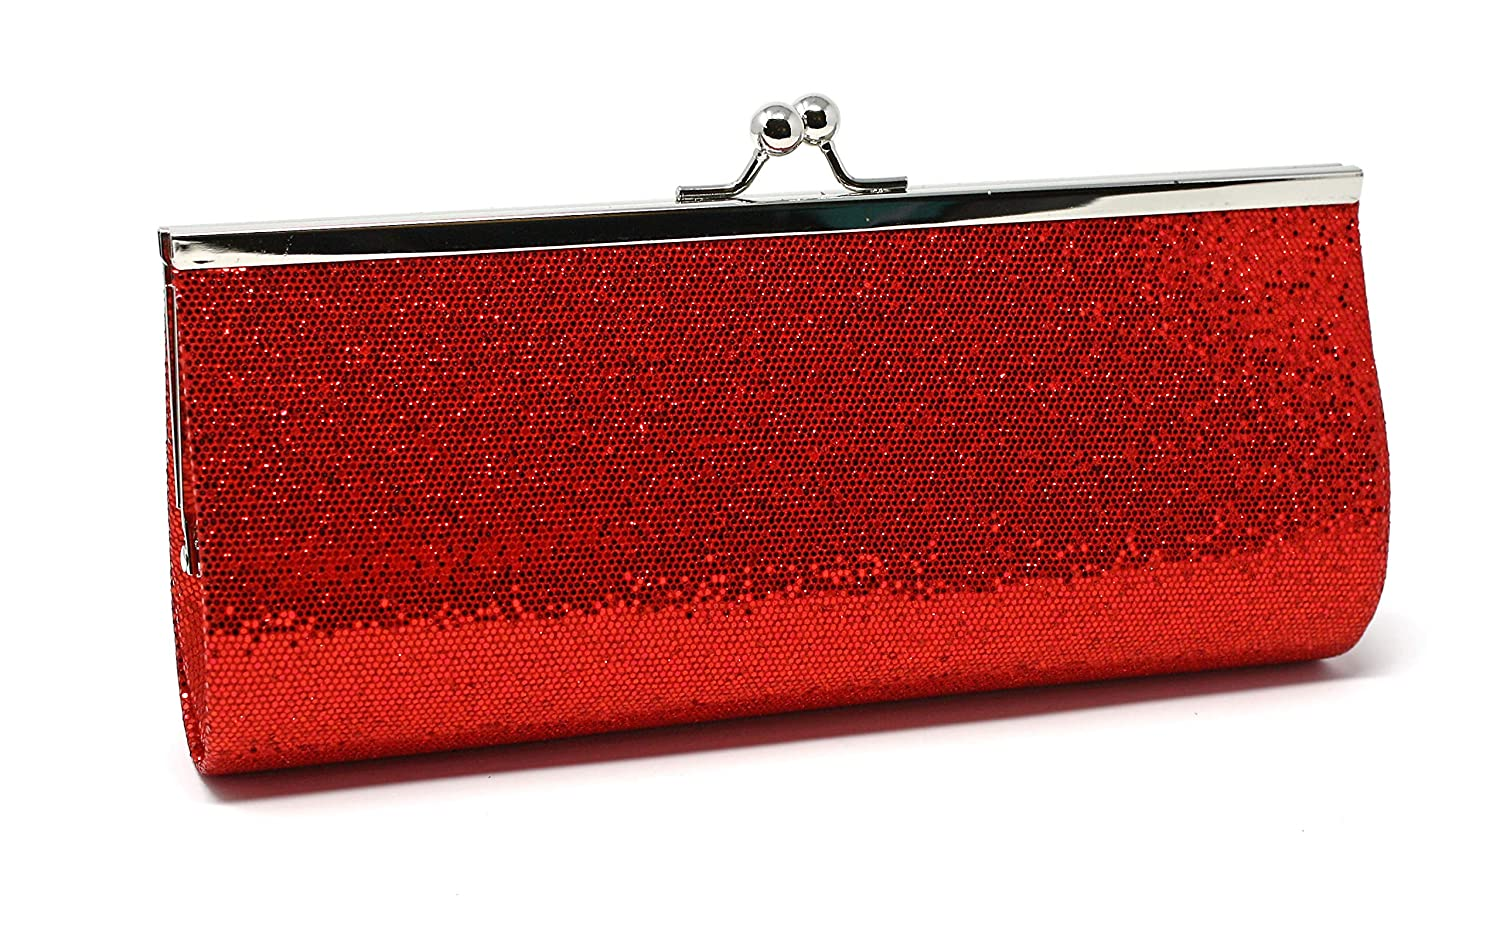 10x4 Vintage Inspired Purse Hey Viv Colorful Glitter Evening Clutch